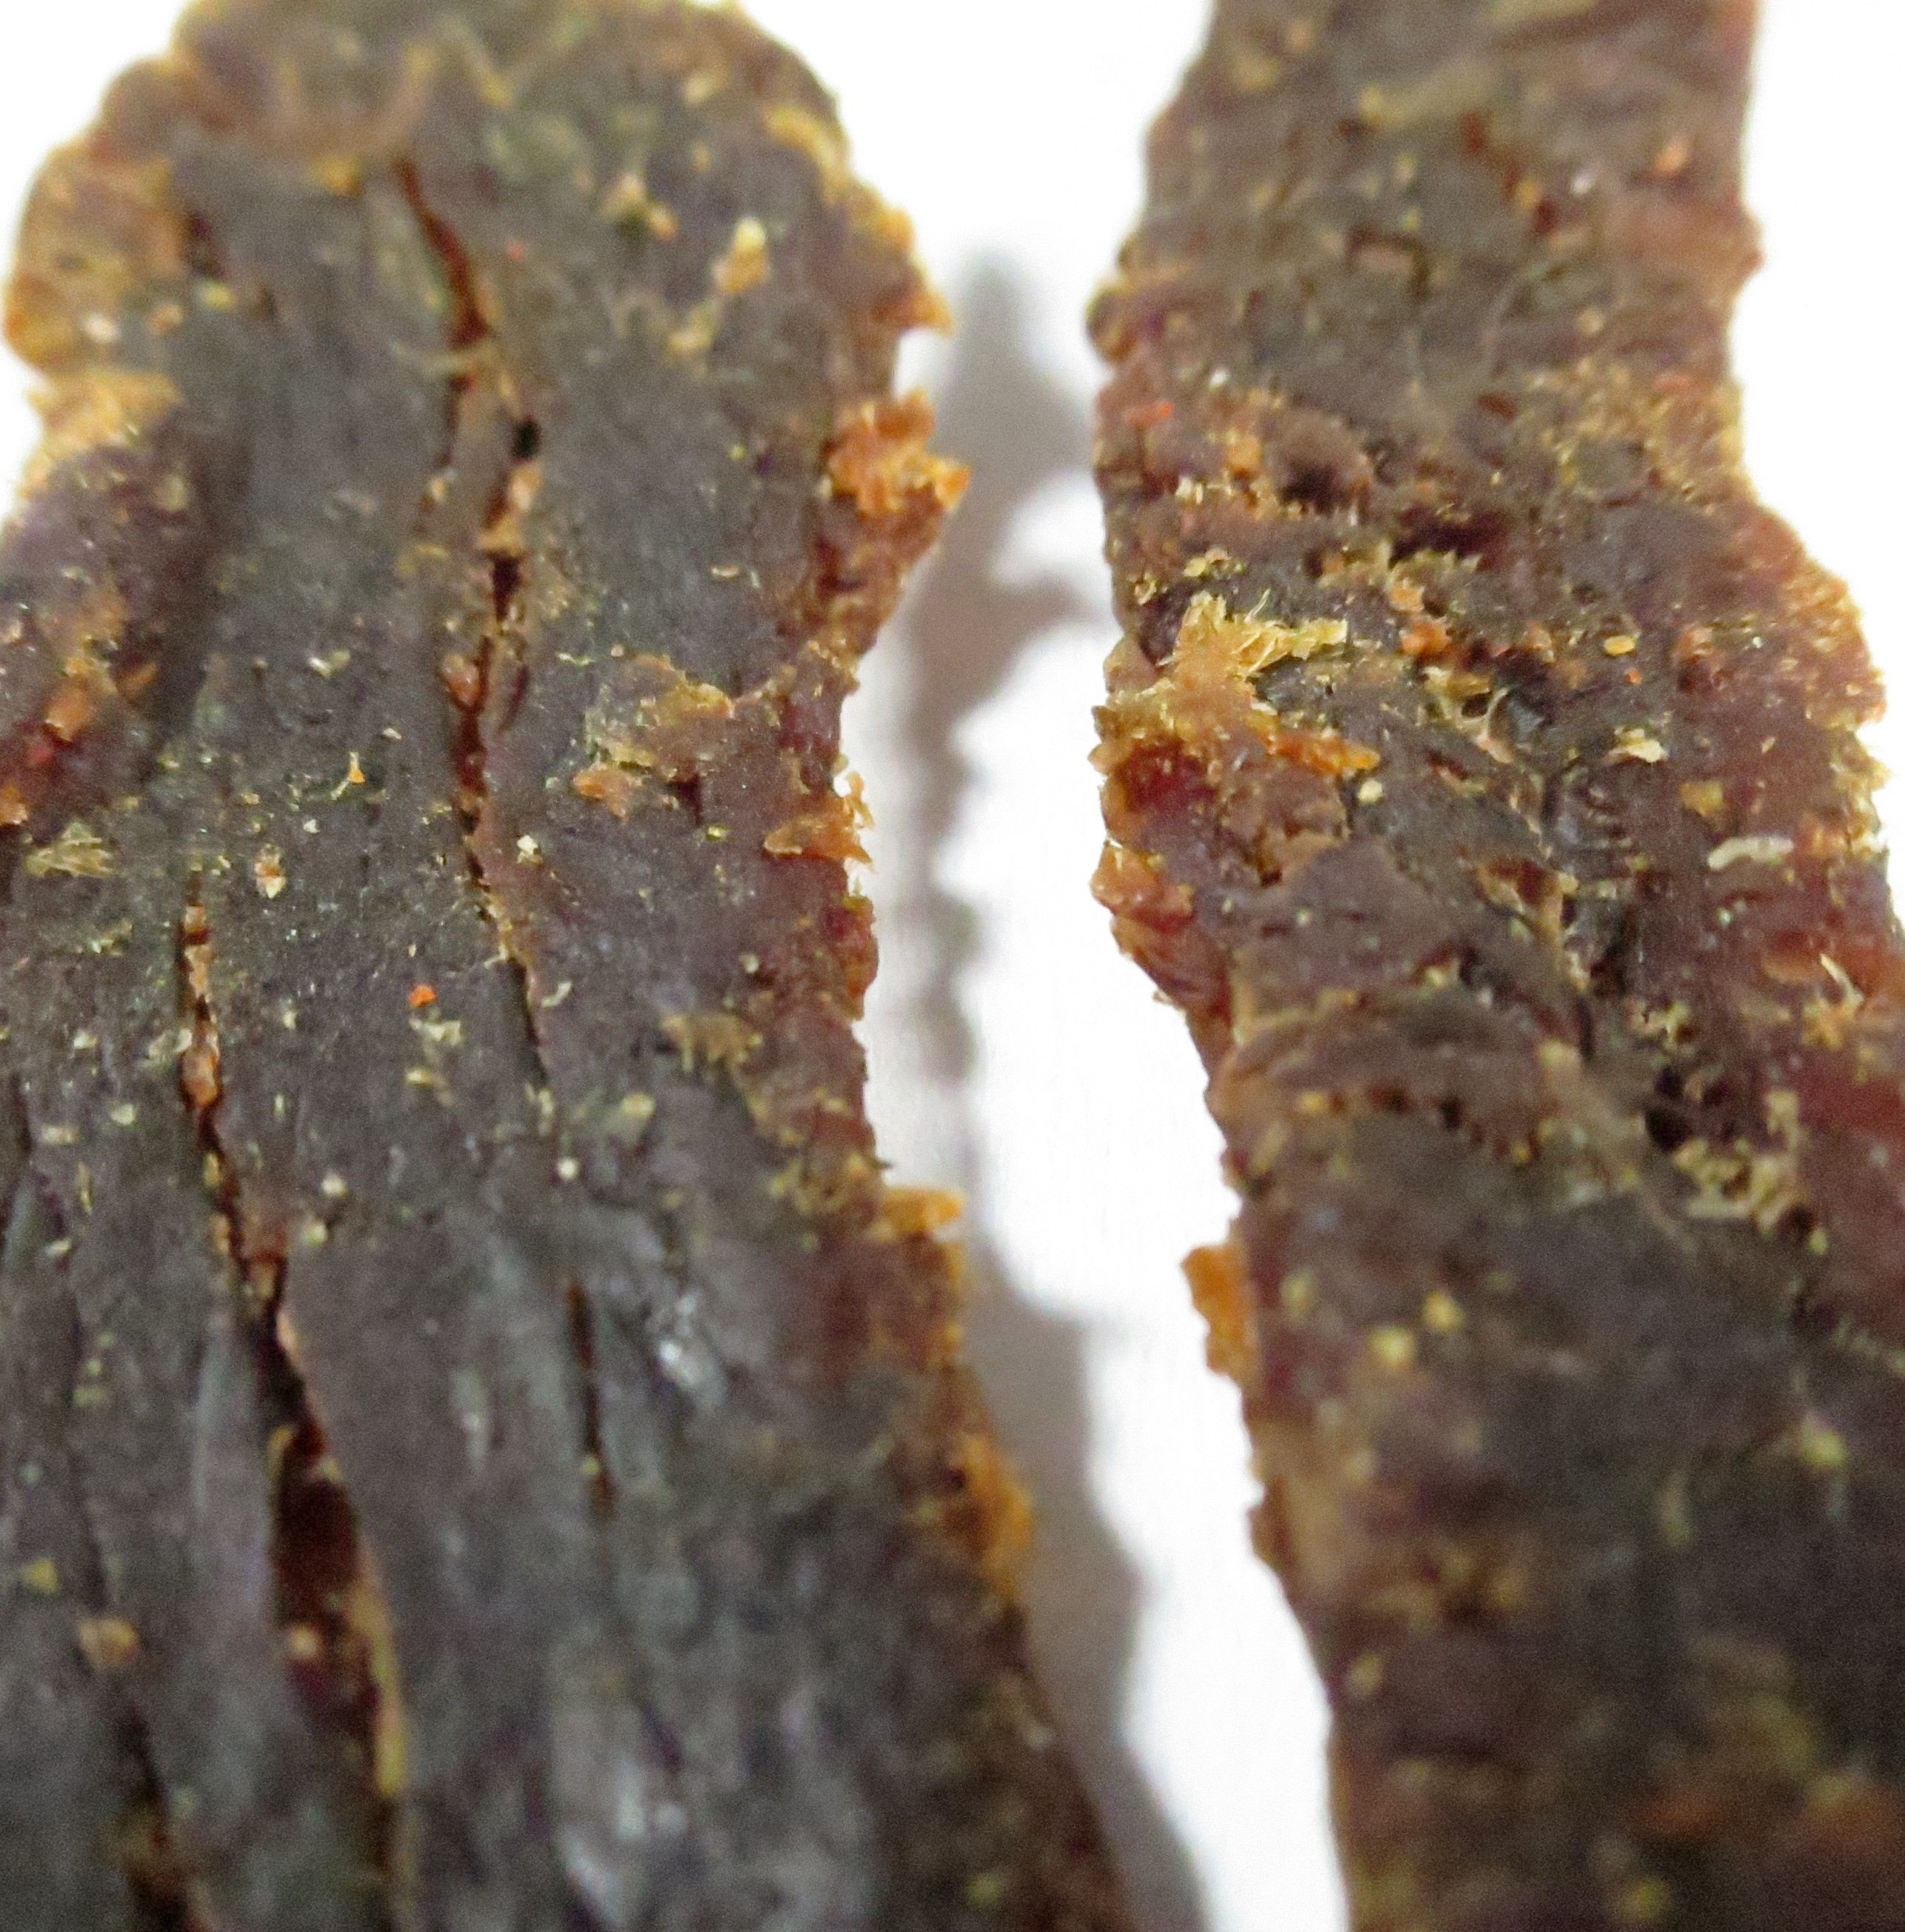 Jerky S Gourmet Of San Diego Bbq Mesquite 100 Grass Fed Beef Jerky Grass Fed Beef Jerky Beef Jerky Grass Fed Beef